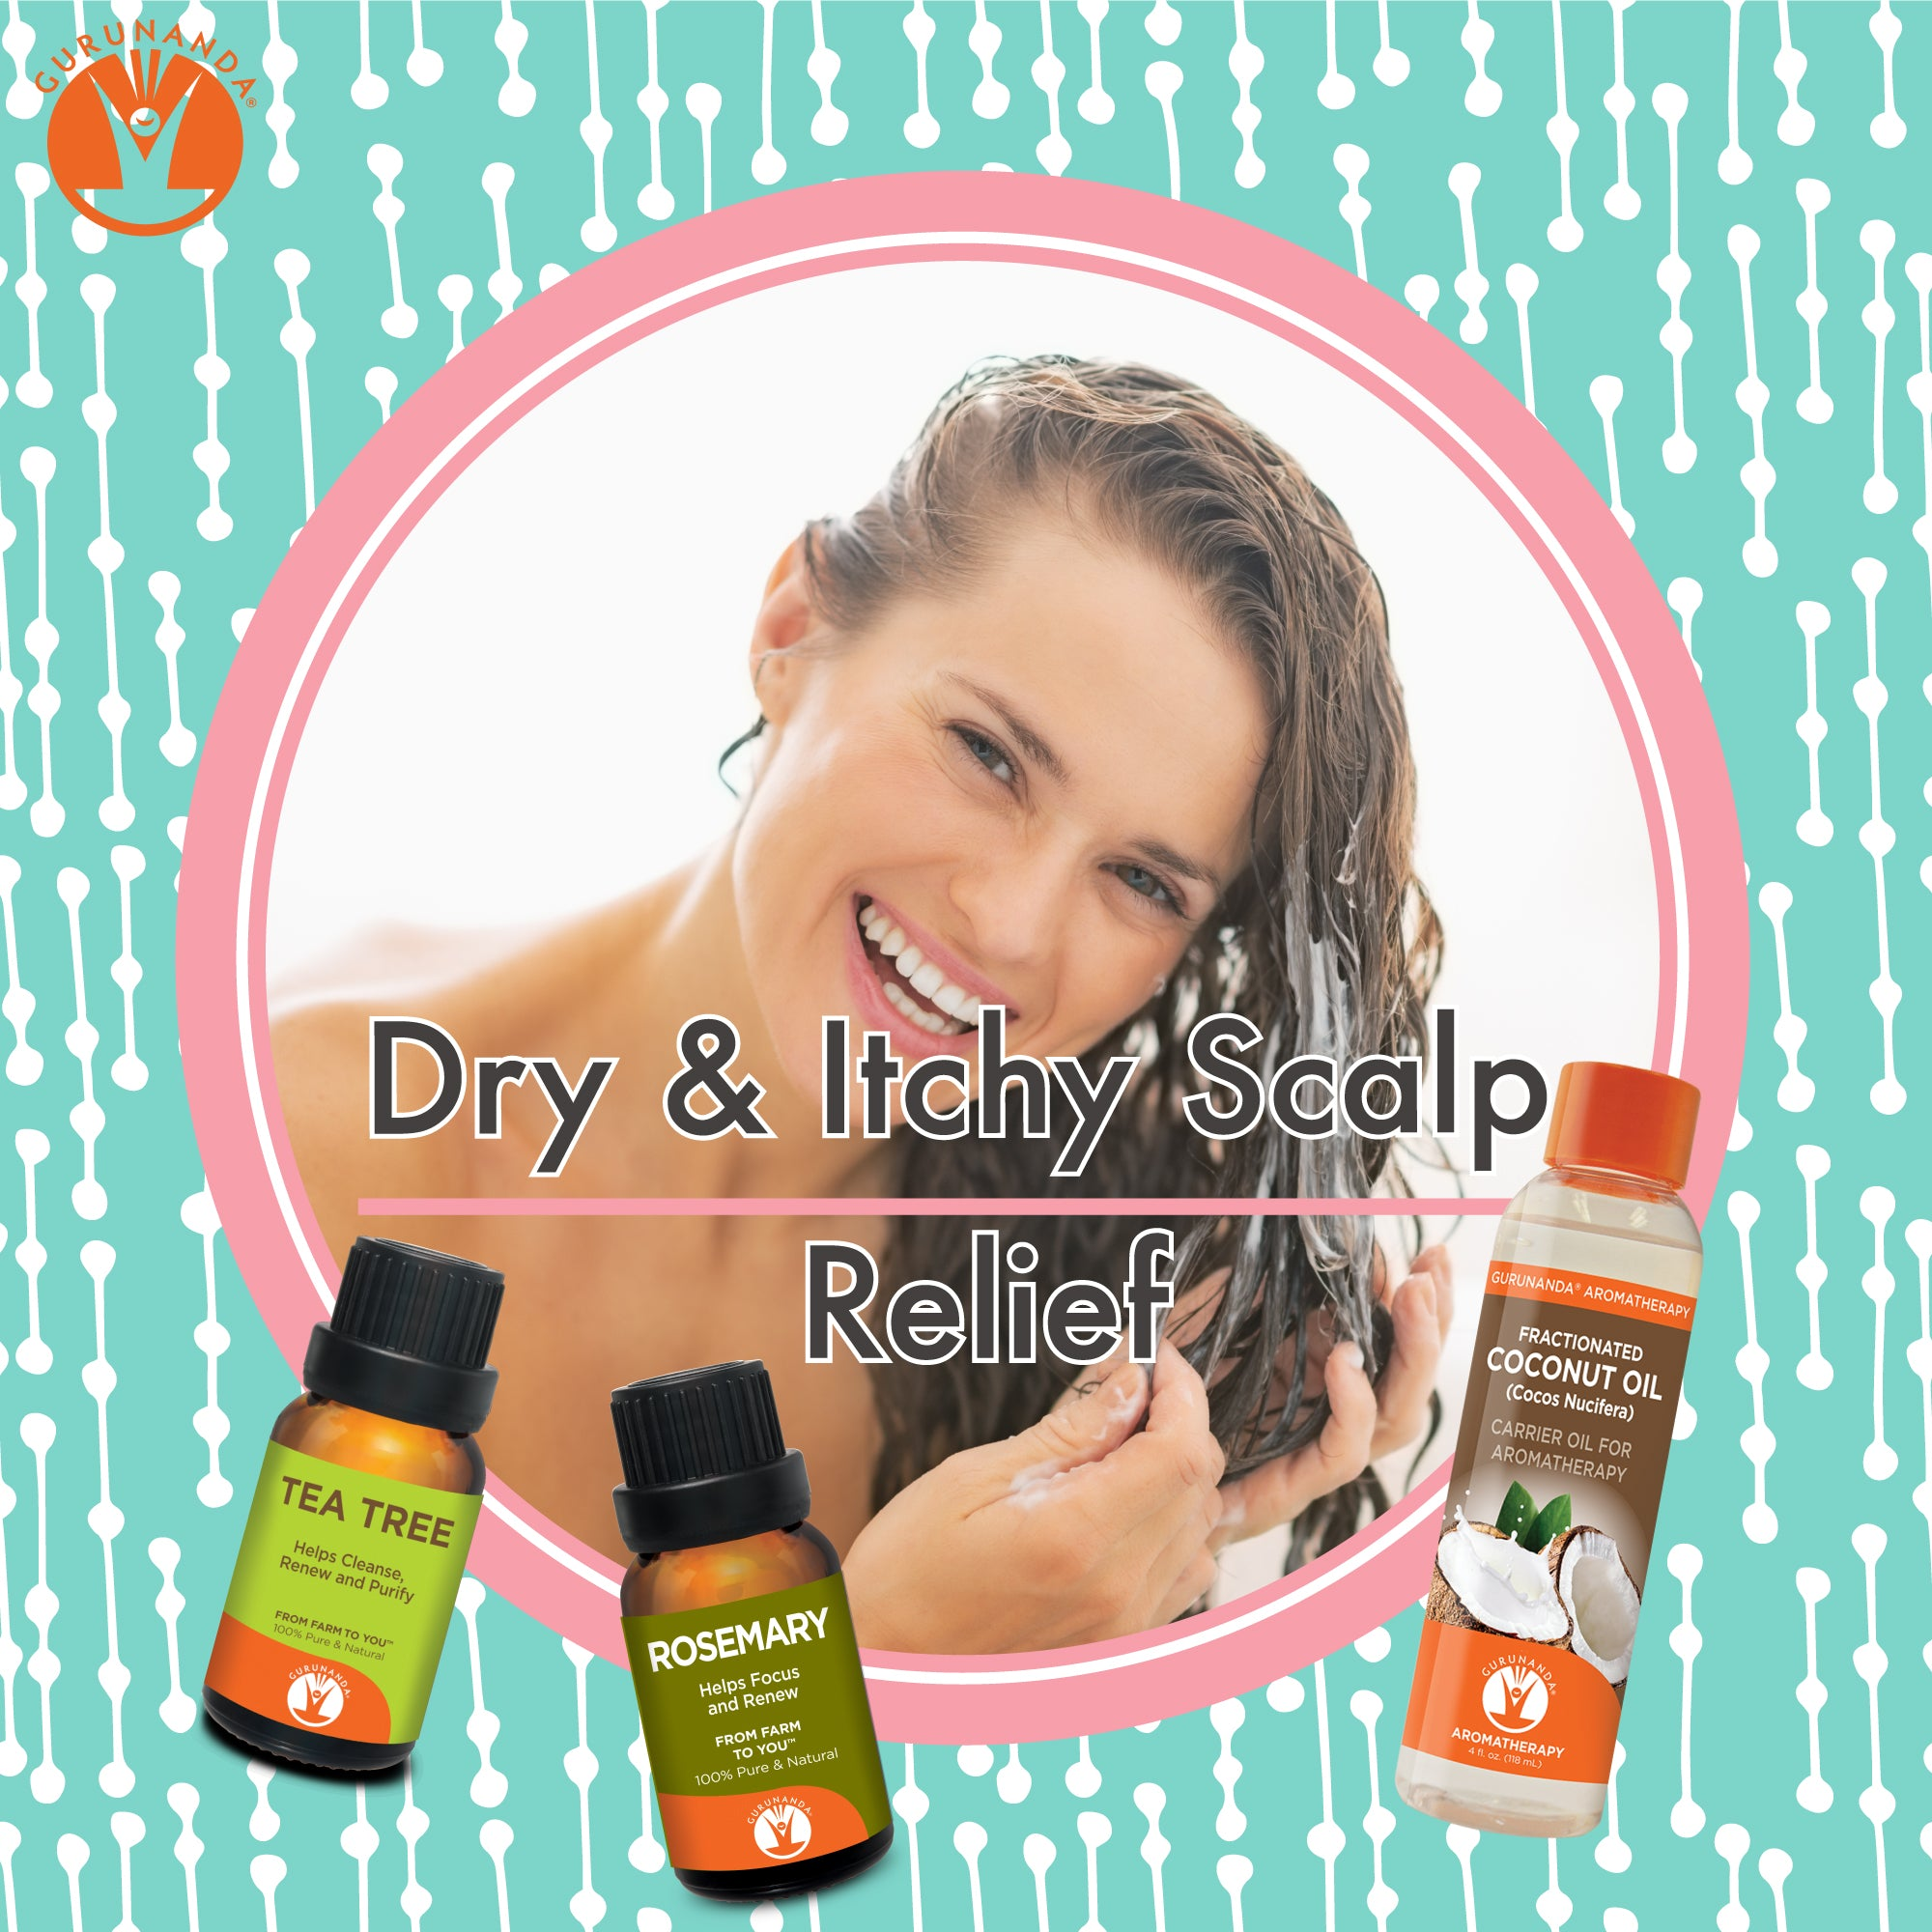 DIY Dry & Itchy Scalp Relief Shampoo